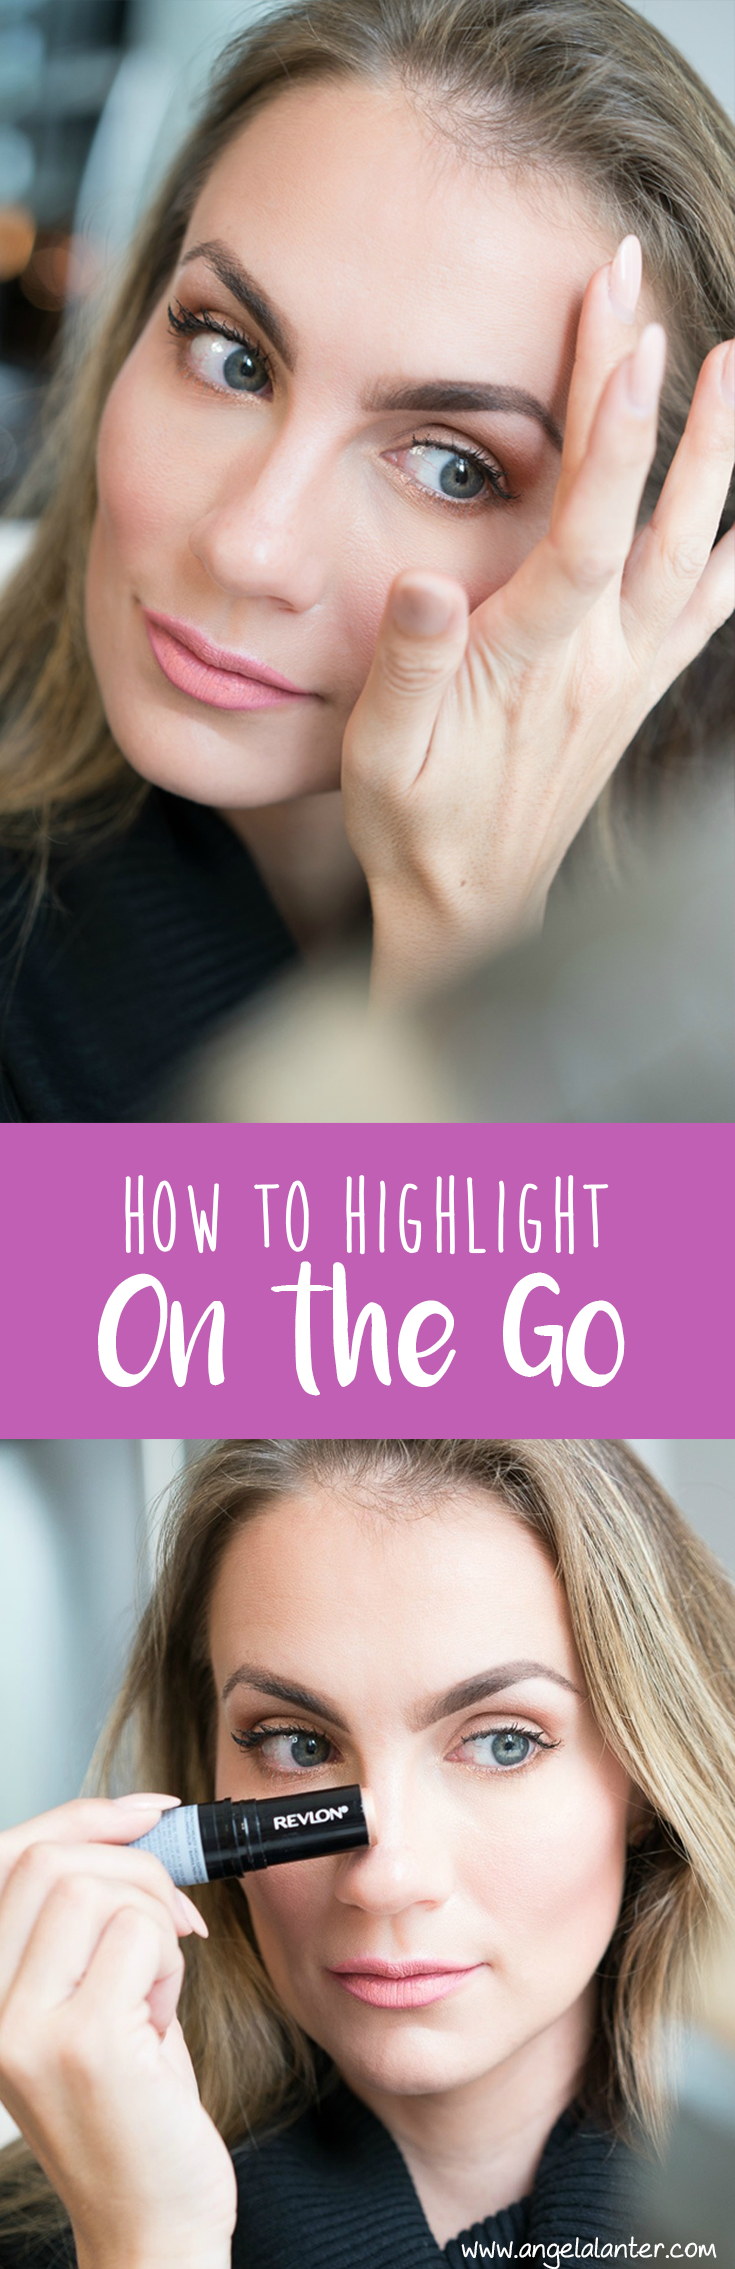 How to highlight on the go by Angela Lanter - Hello Gorgeous